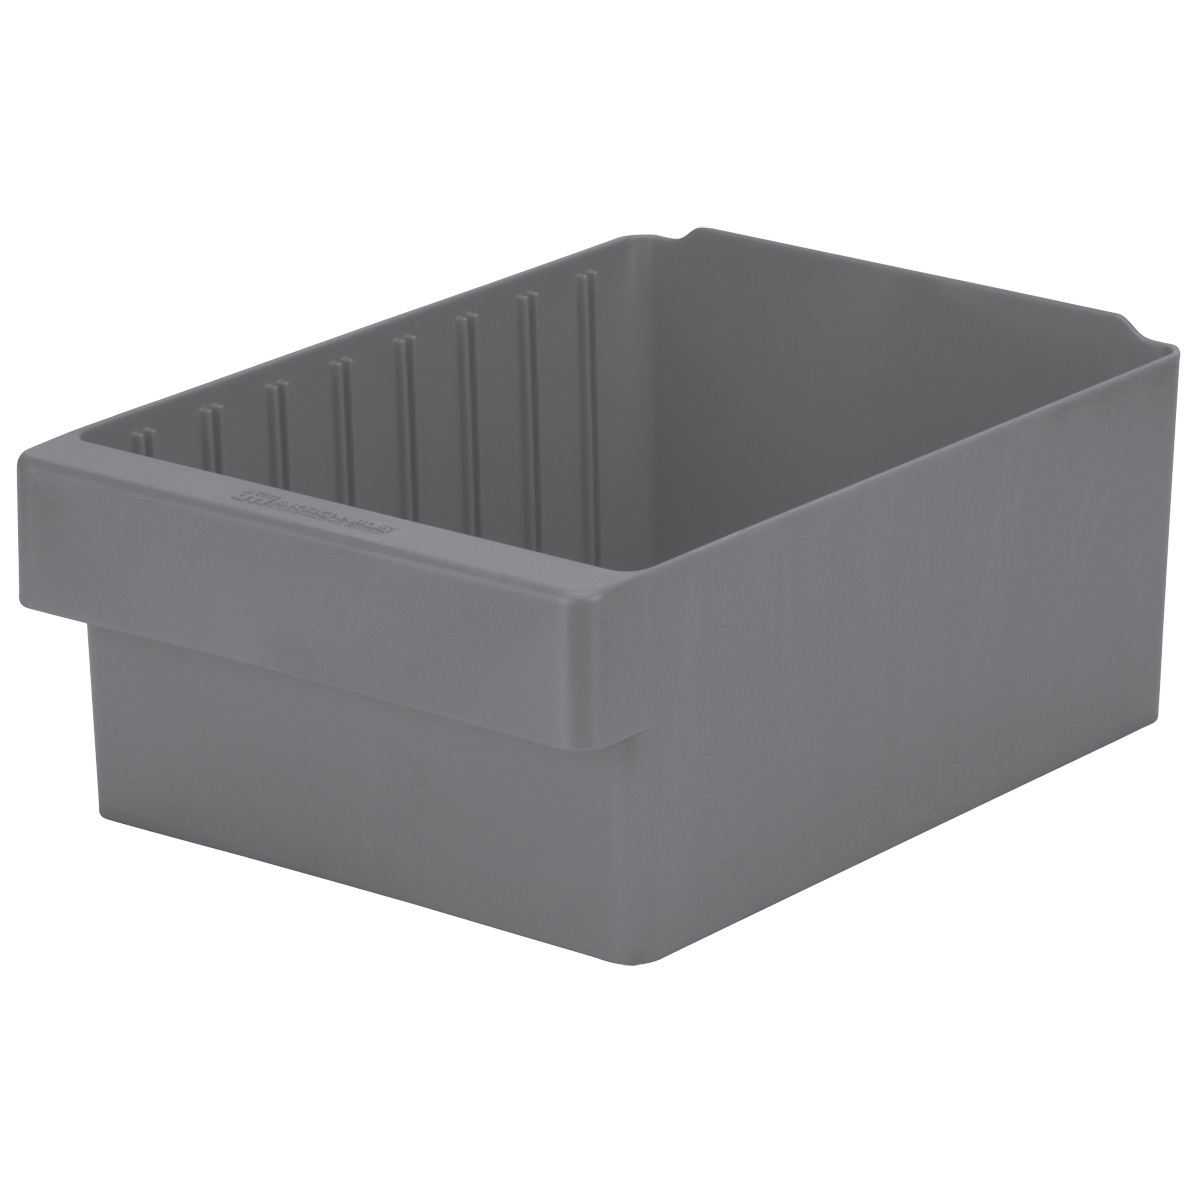 AkroDrawer 11-5/8 x 8-3/8 x 4-5/8, Gray (31182GRY).  This item sold in carton quantities of 4.